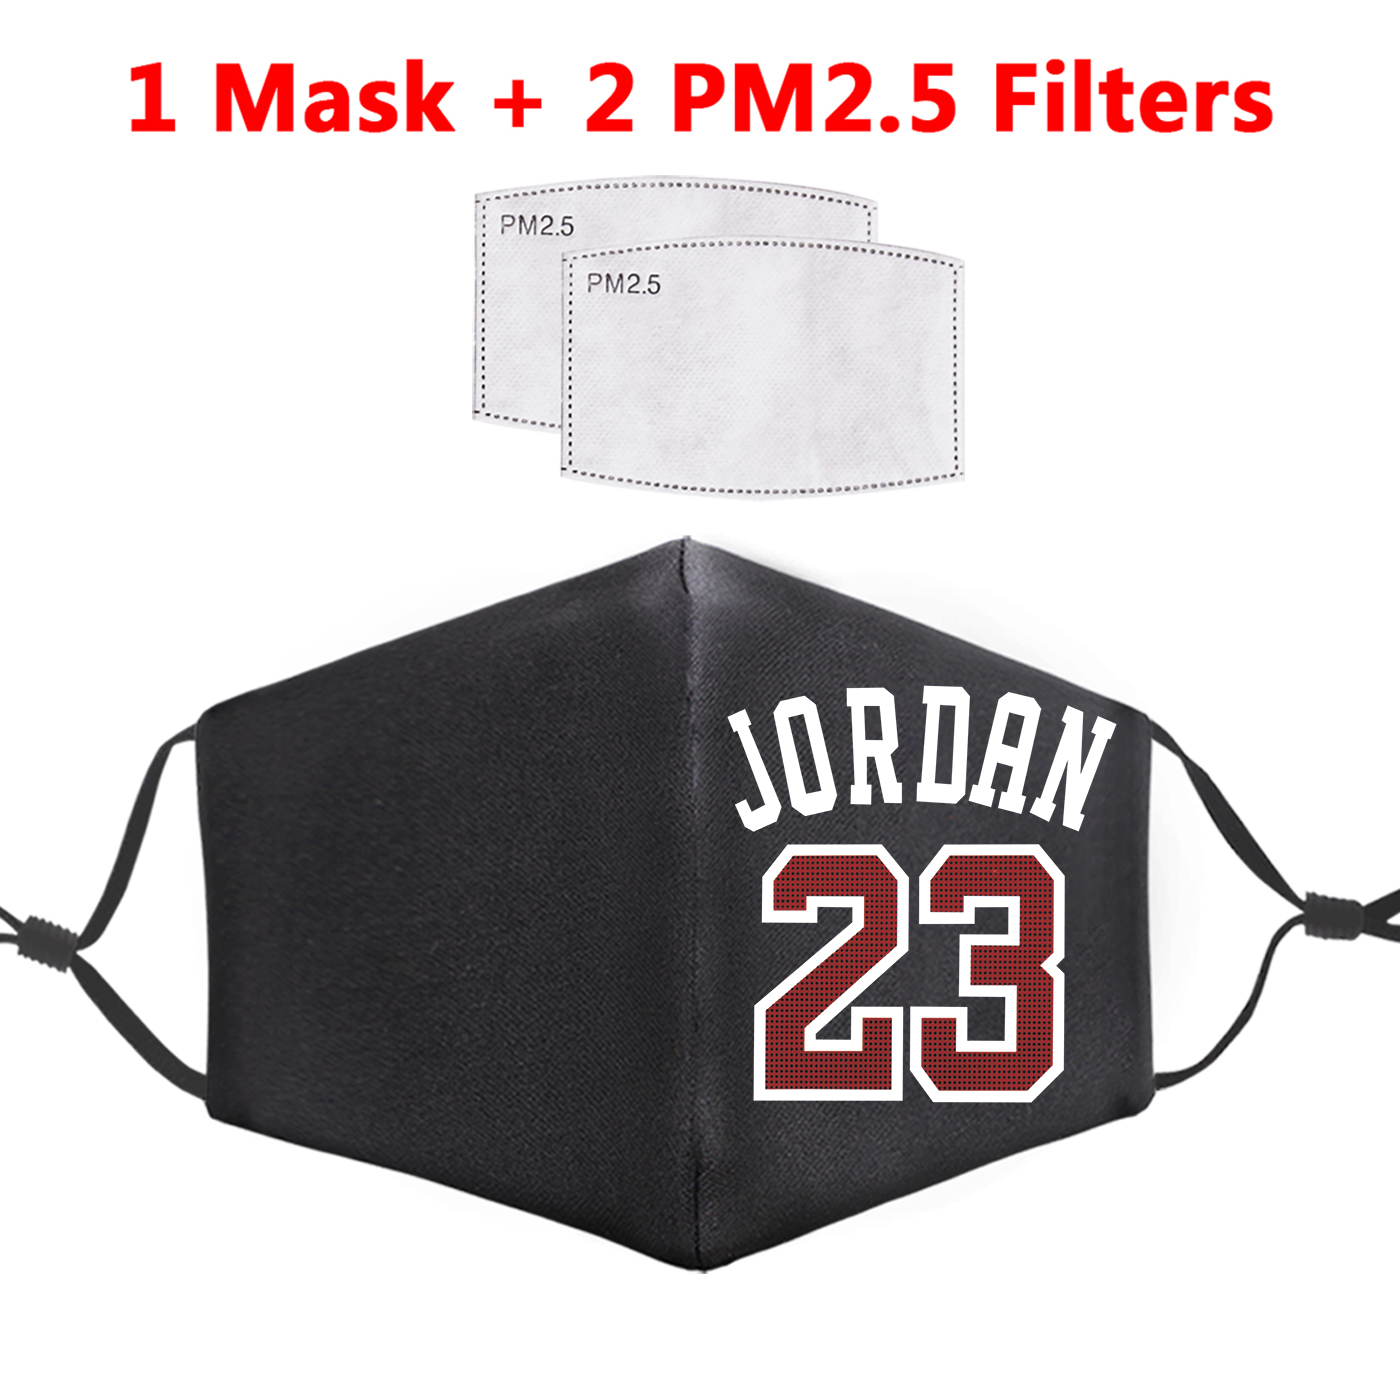 Jordan 23 Printed Face Masks PM2.5 Filter Reusable Adult Masks Windproof Fabric Mouth Cover Dust Unisex Proof Flu Bacteria Mask